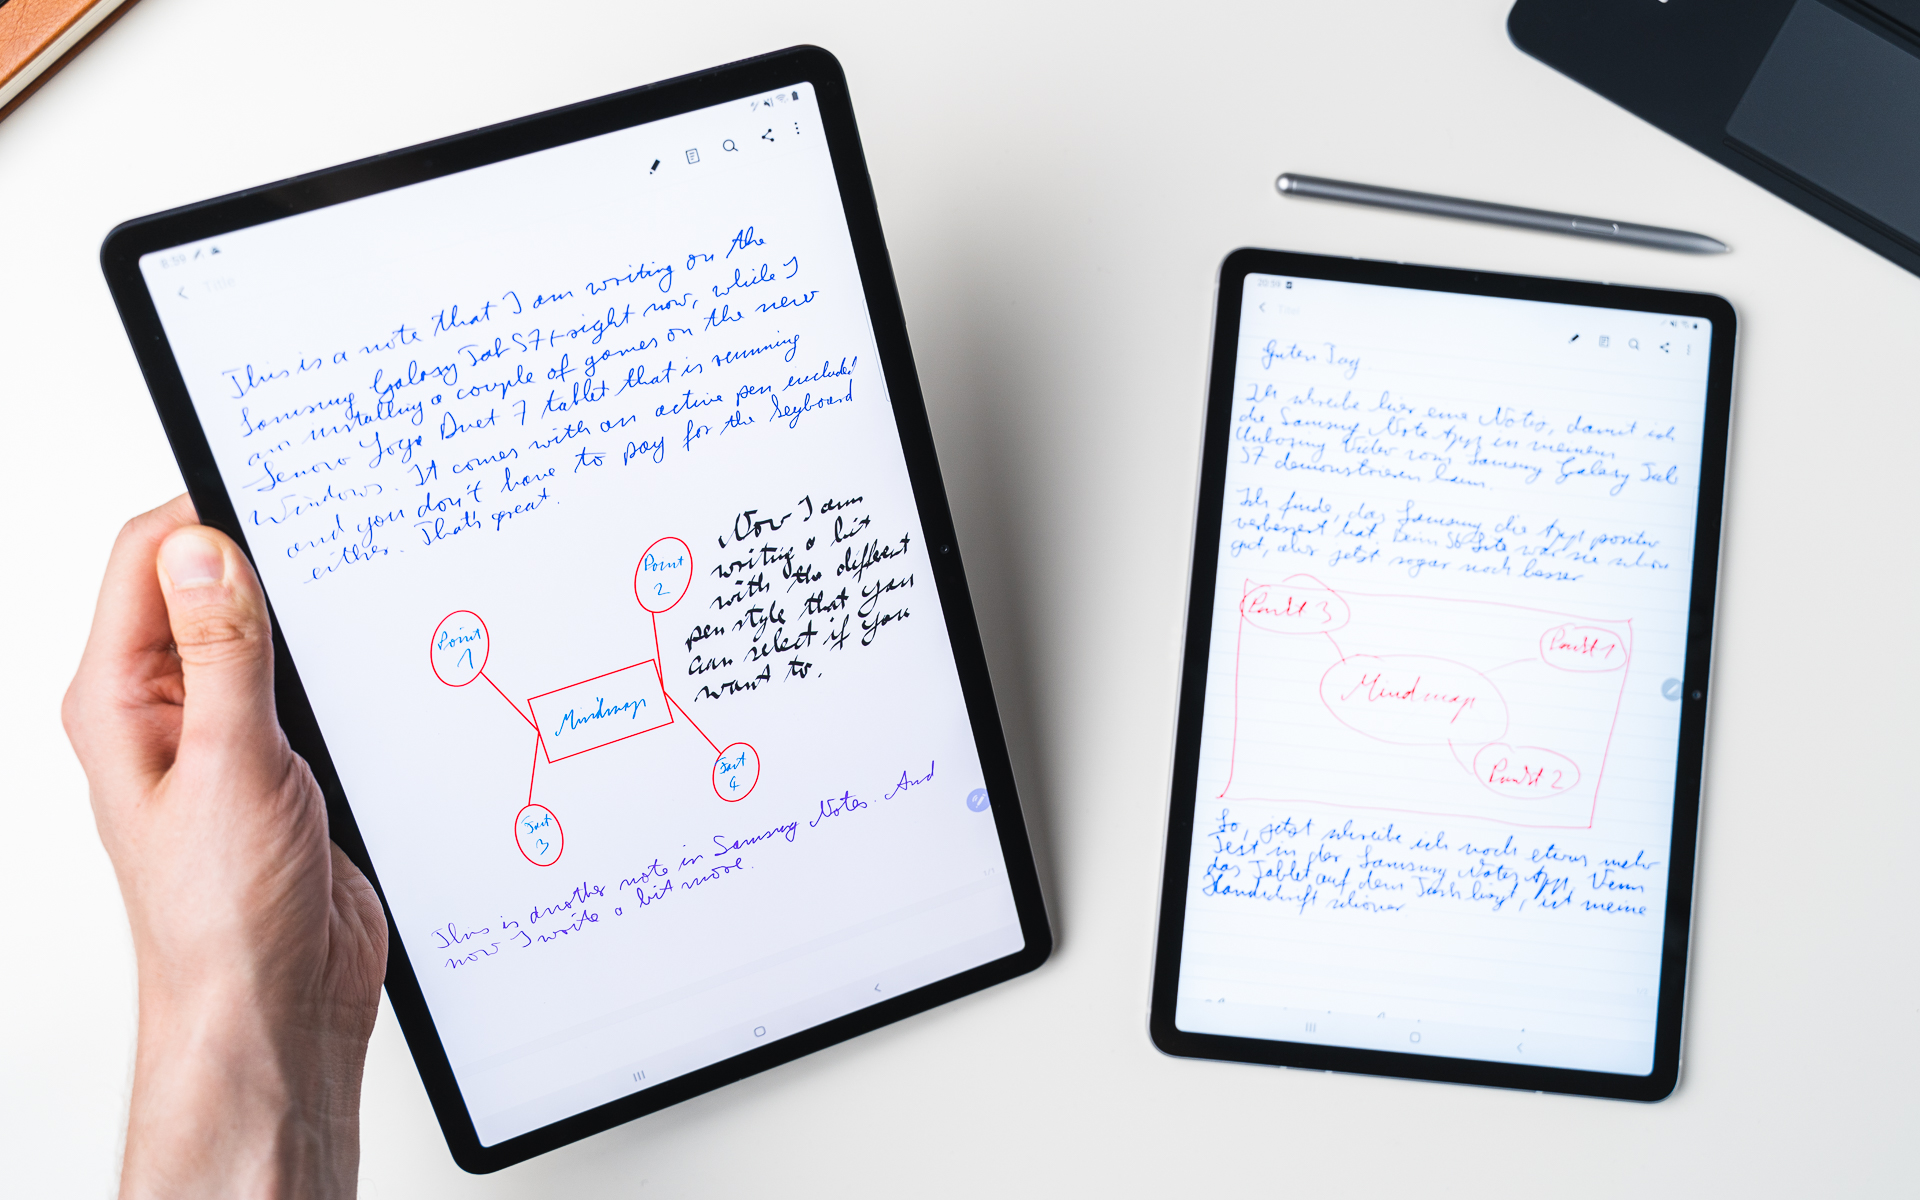 Samsung Galaxy Tab S7 S Pen features